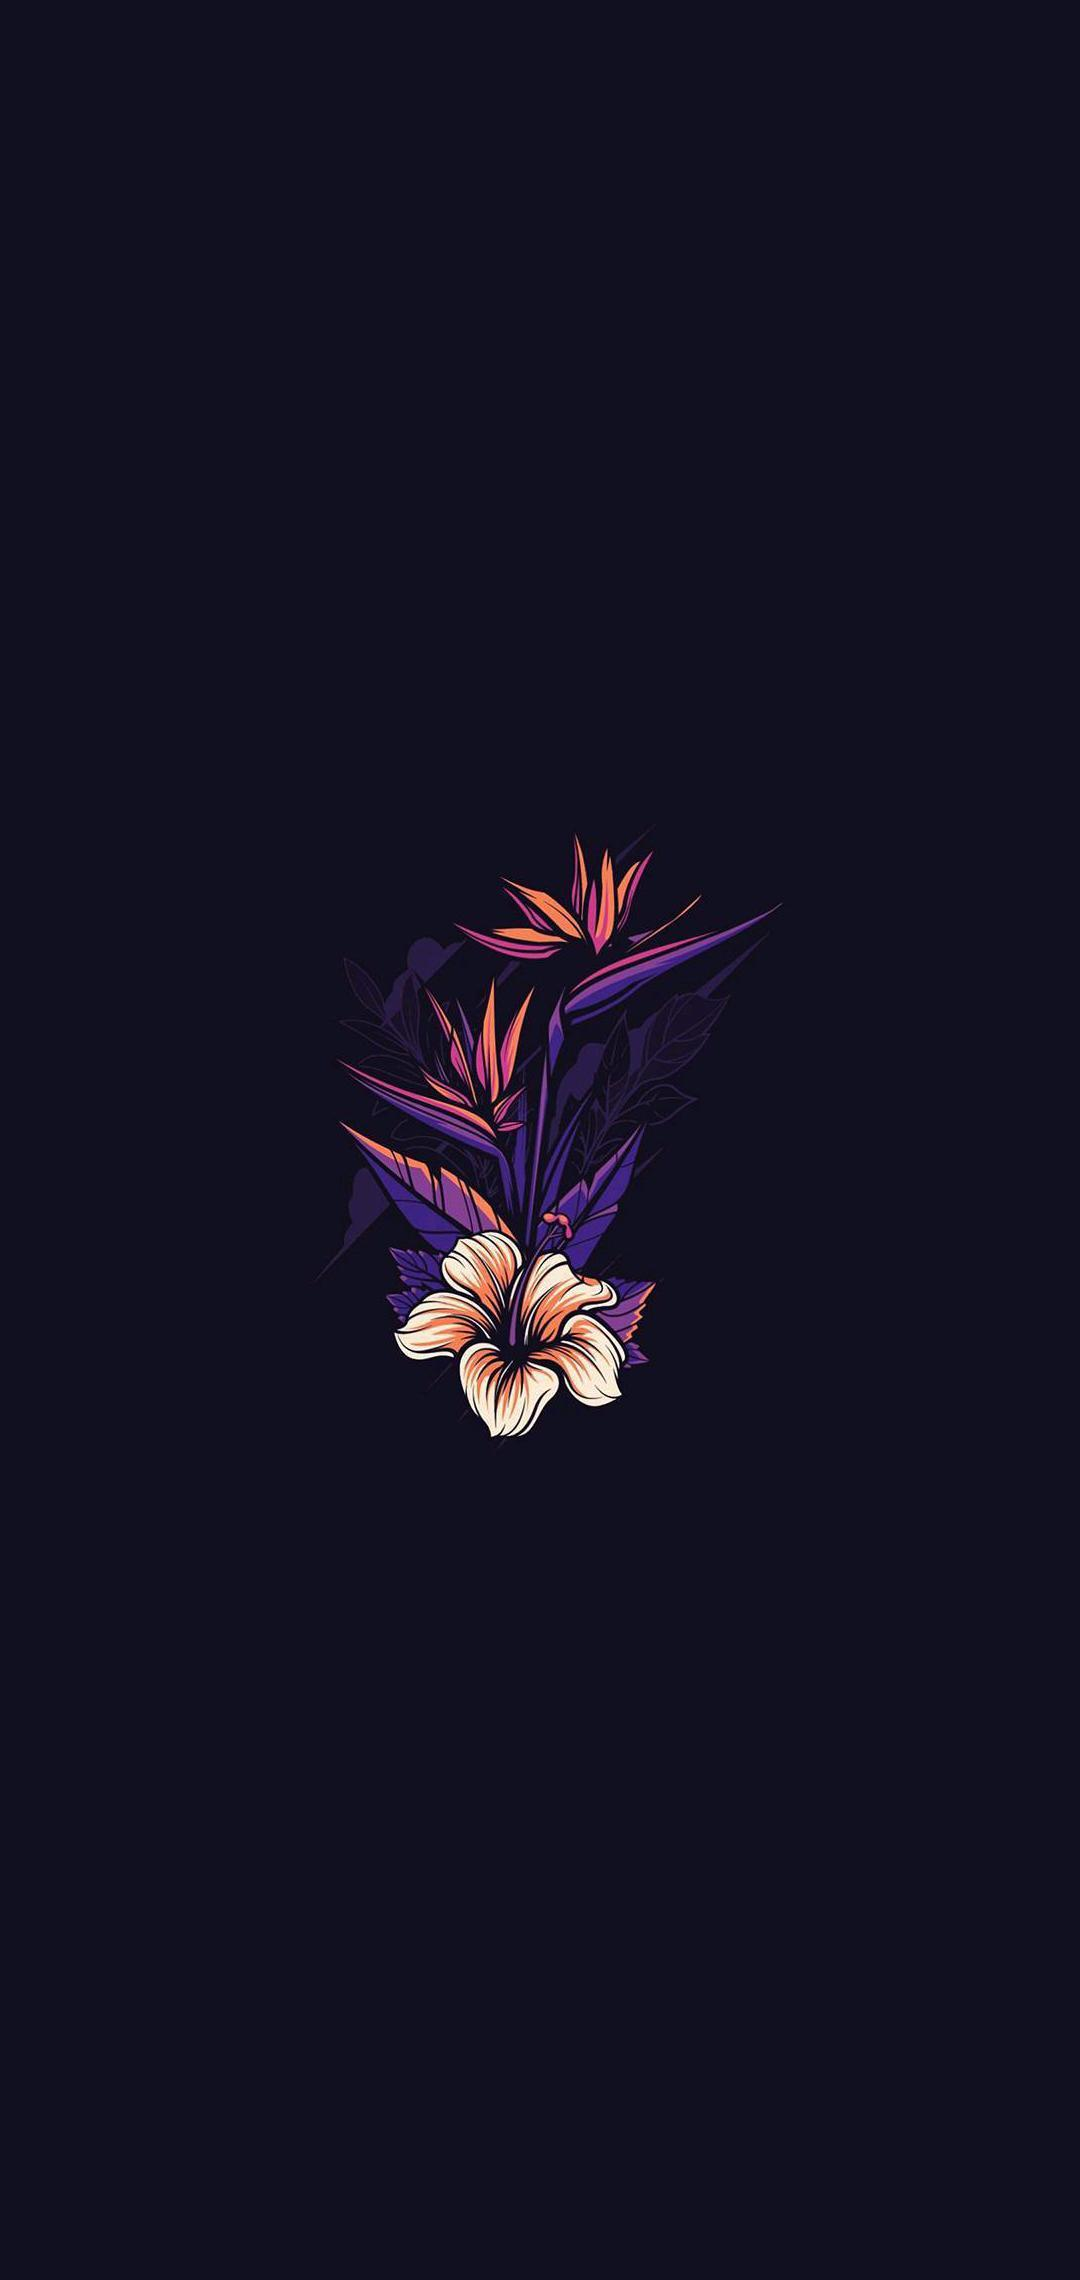 Amoled Black Flowers Wallpapers Wallpaper Cave